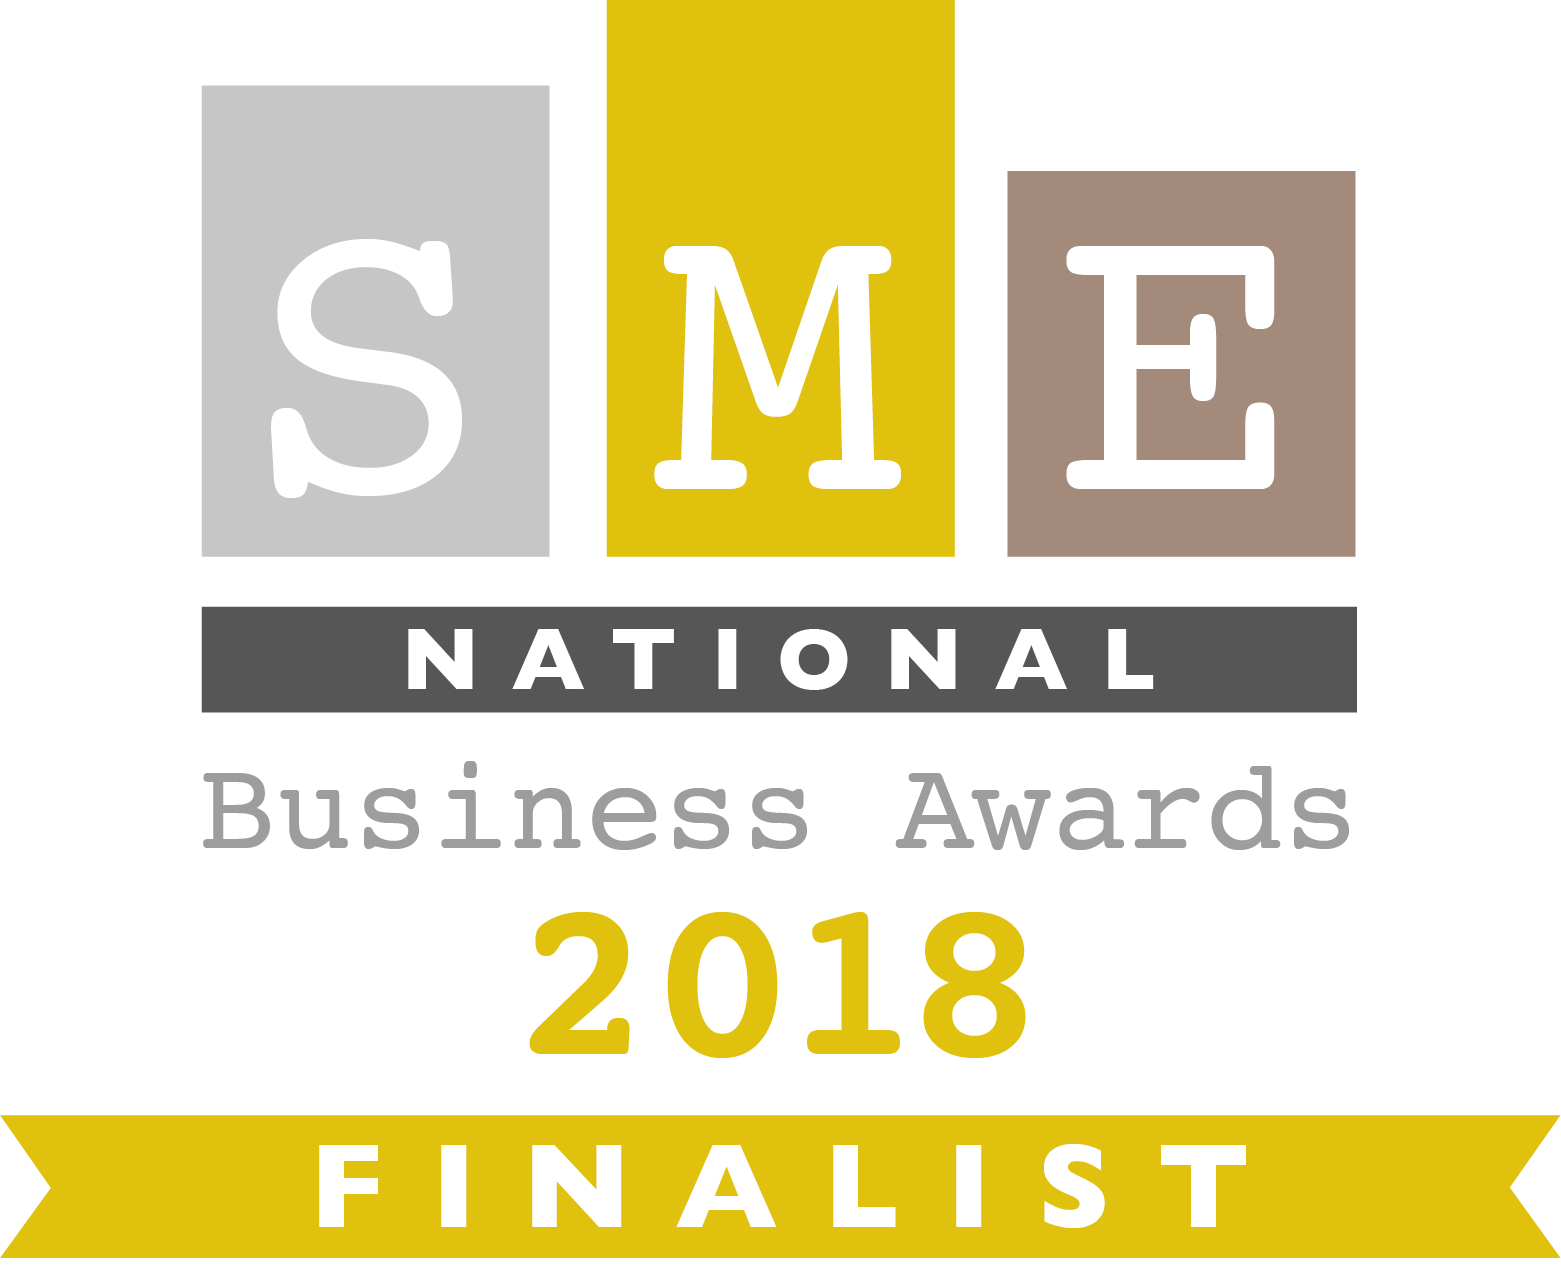 SME National Business Award_Finalist_2018 (002).png